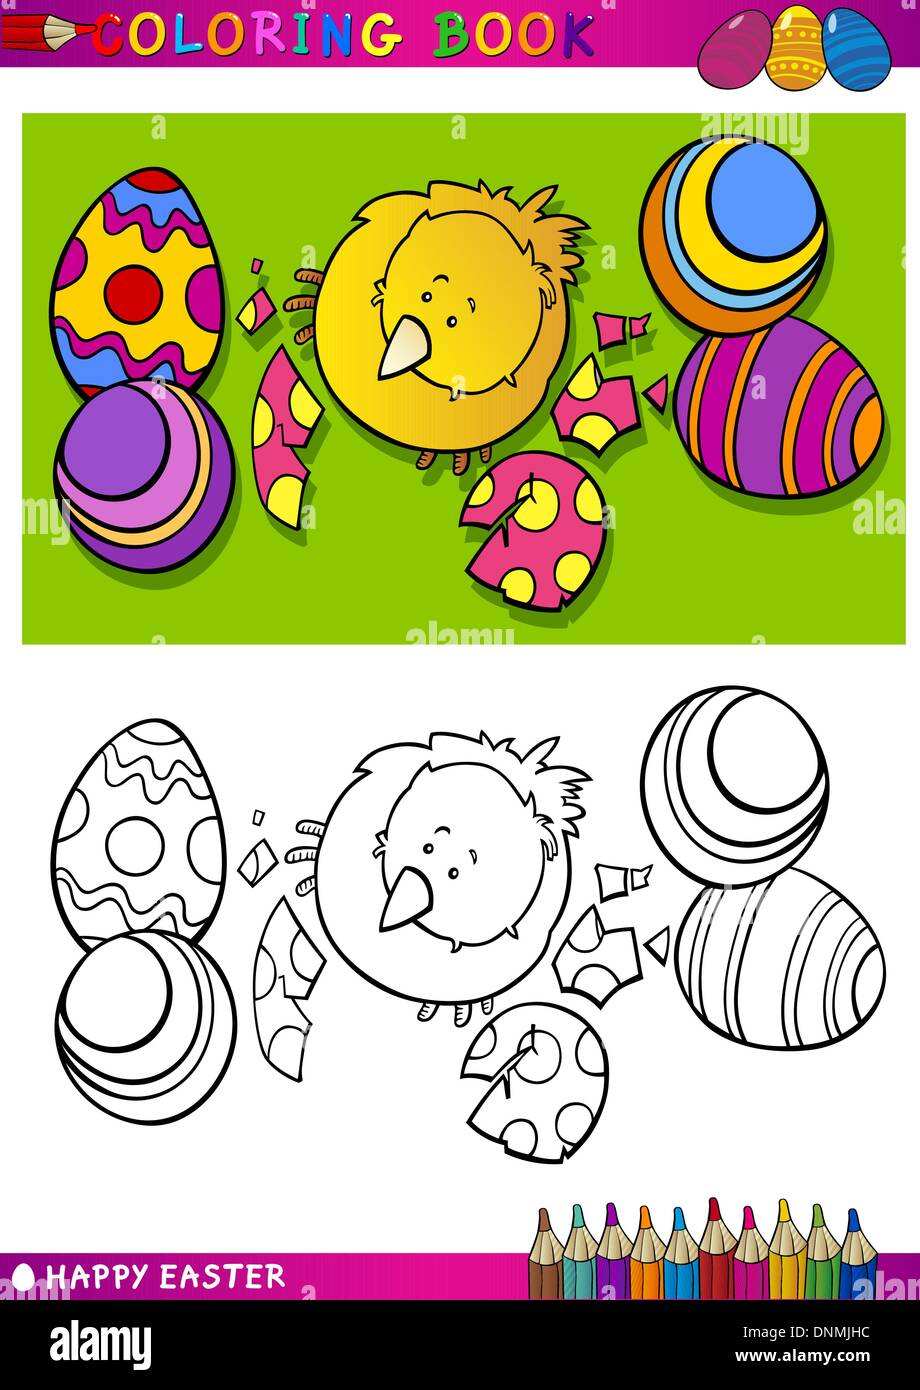 Coloring Book or Page Cartoon Illustration of Easter Little Chick or ...